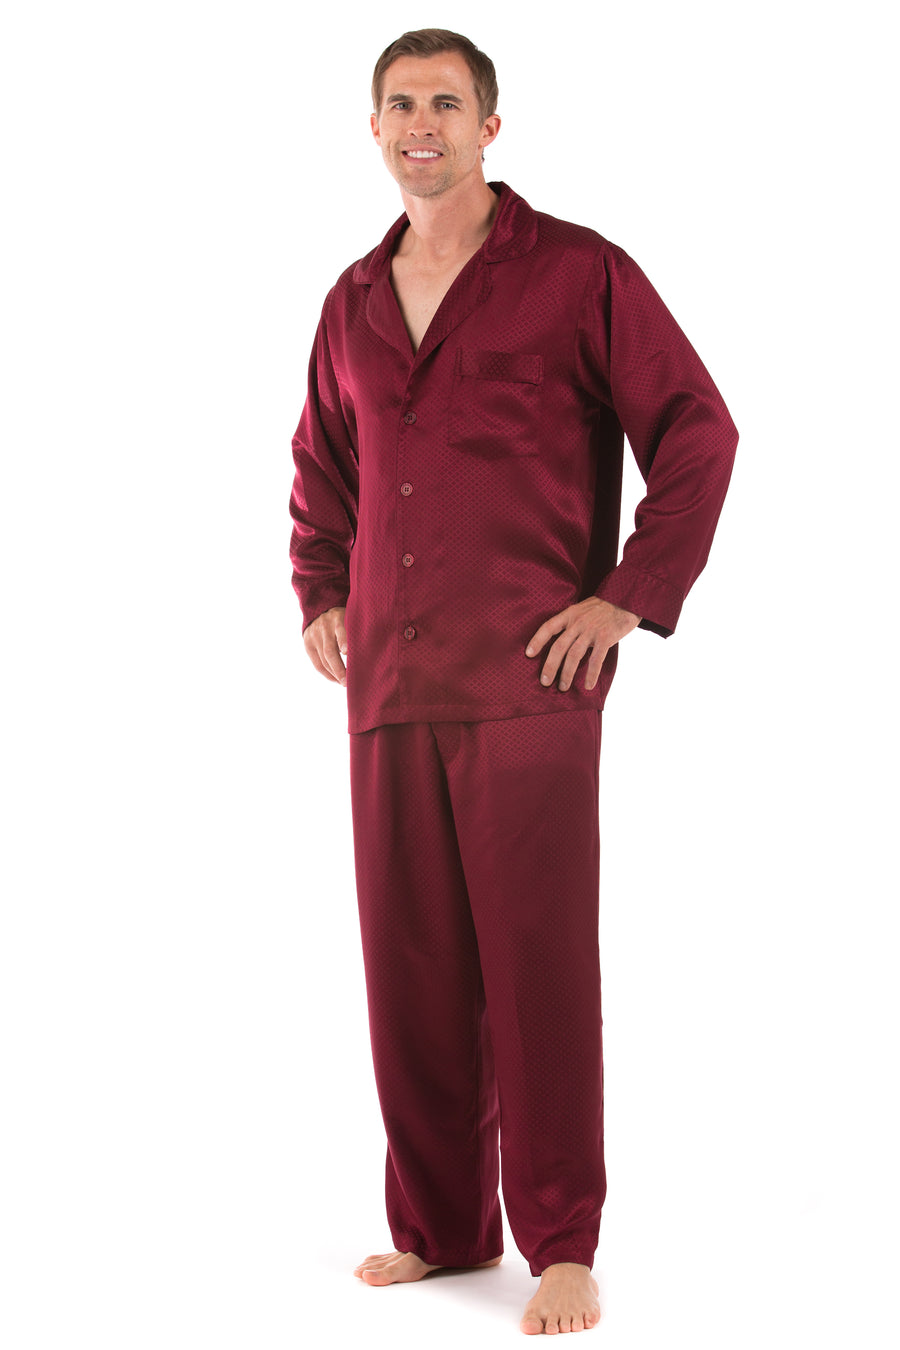 Duke of Burgundy - Silk Jacquard PJ Set - TexereSilk